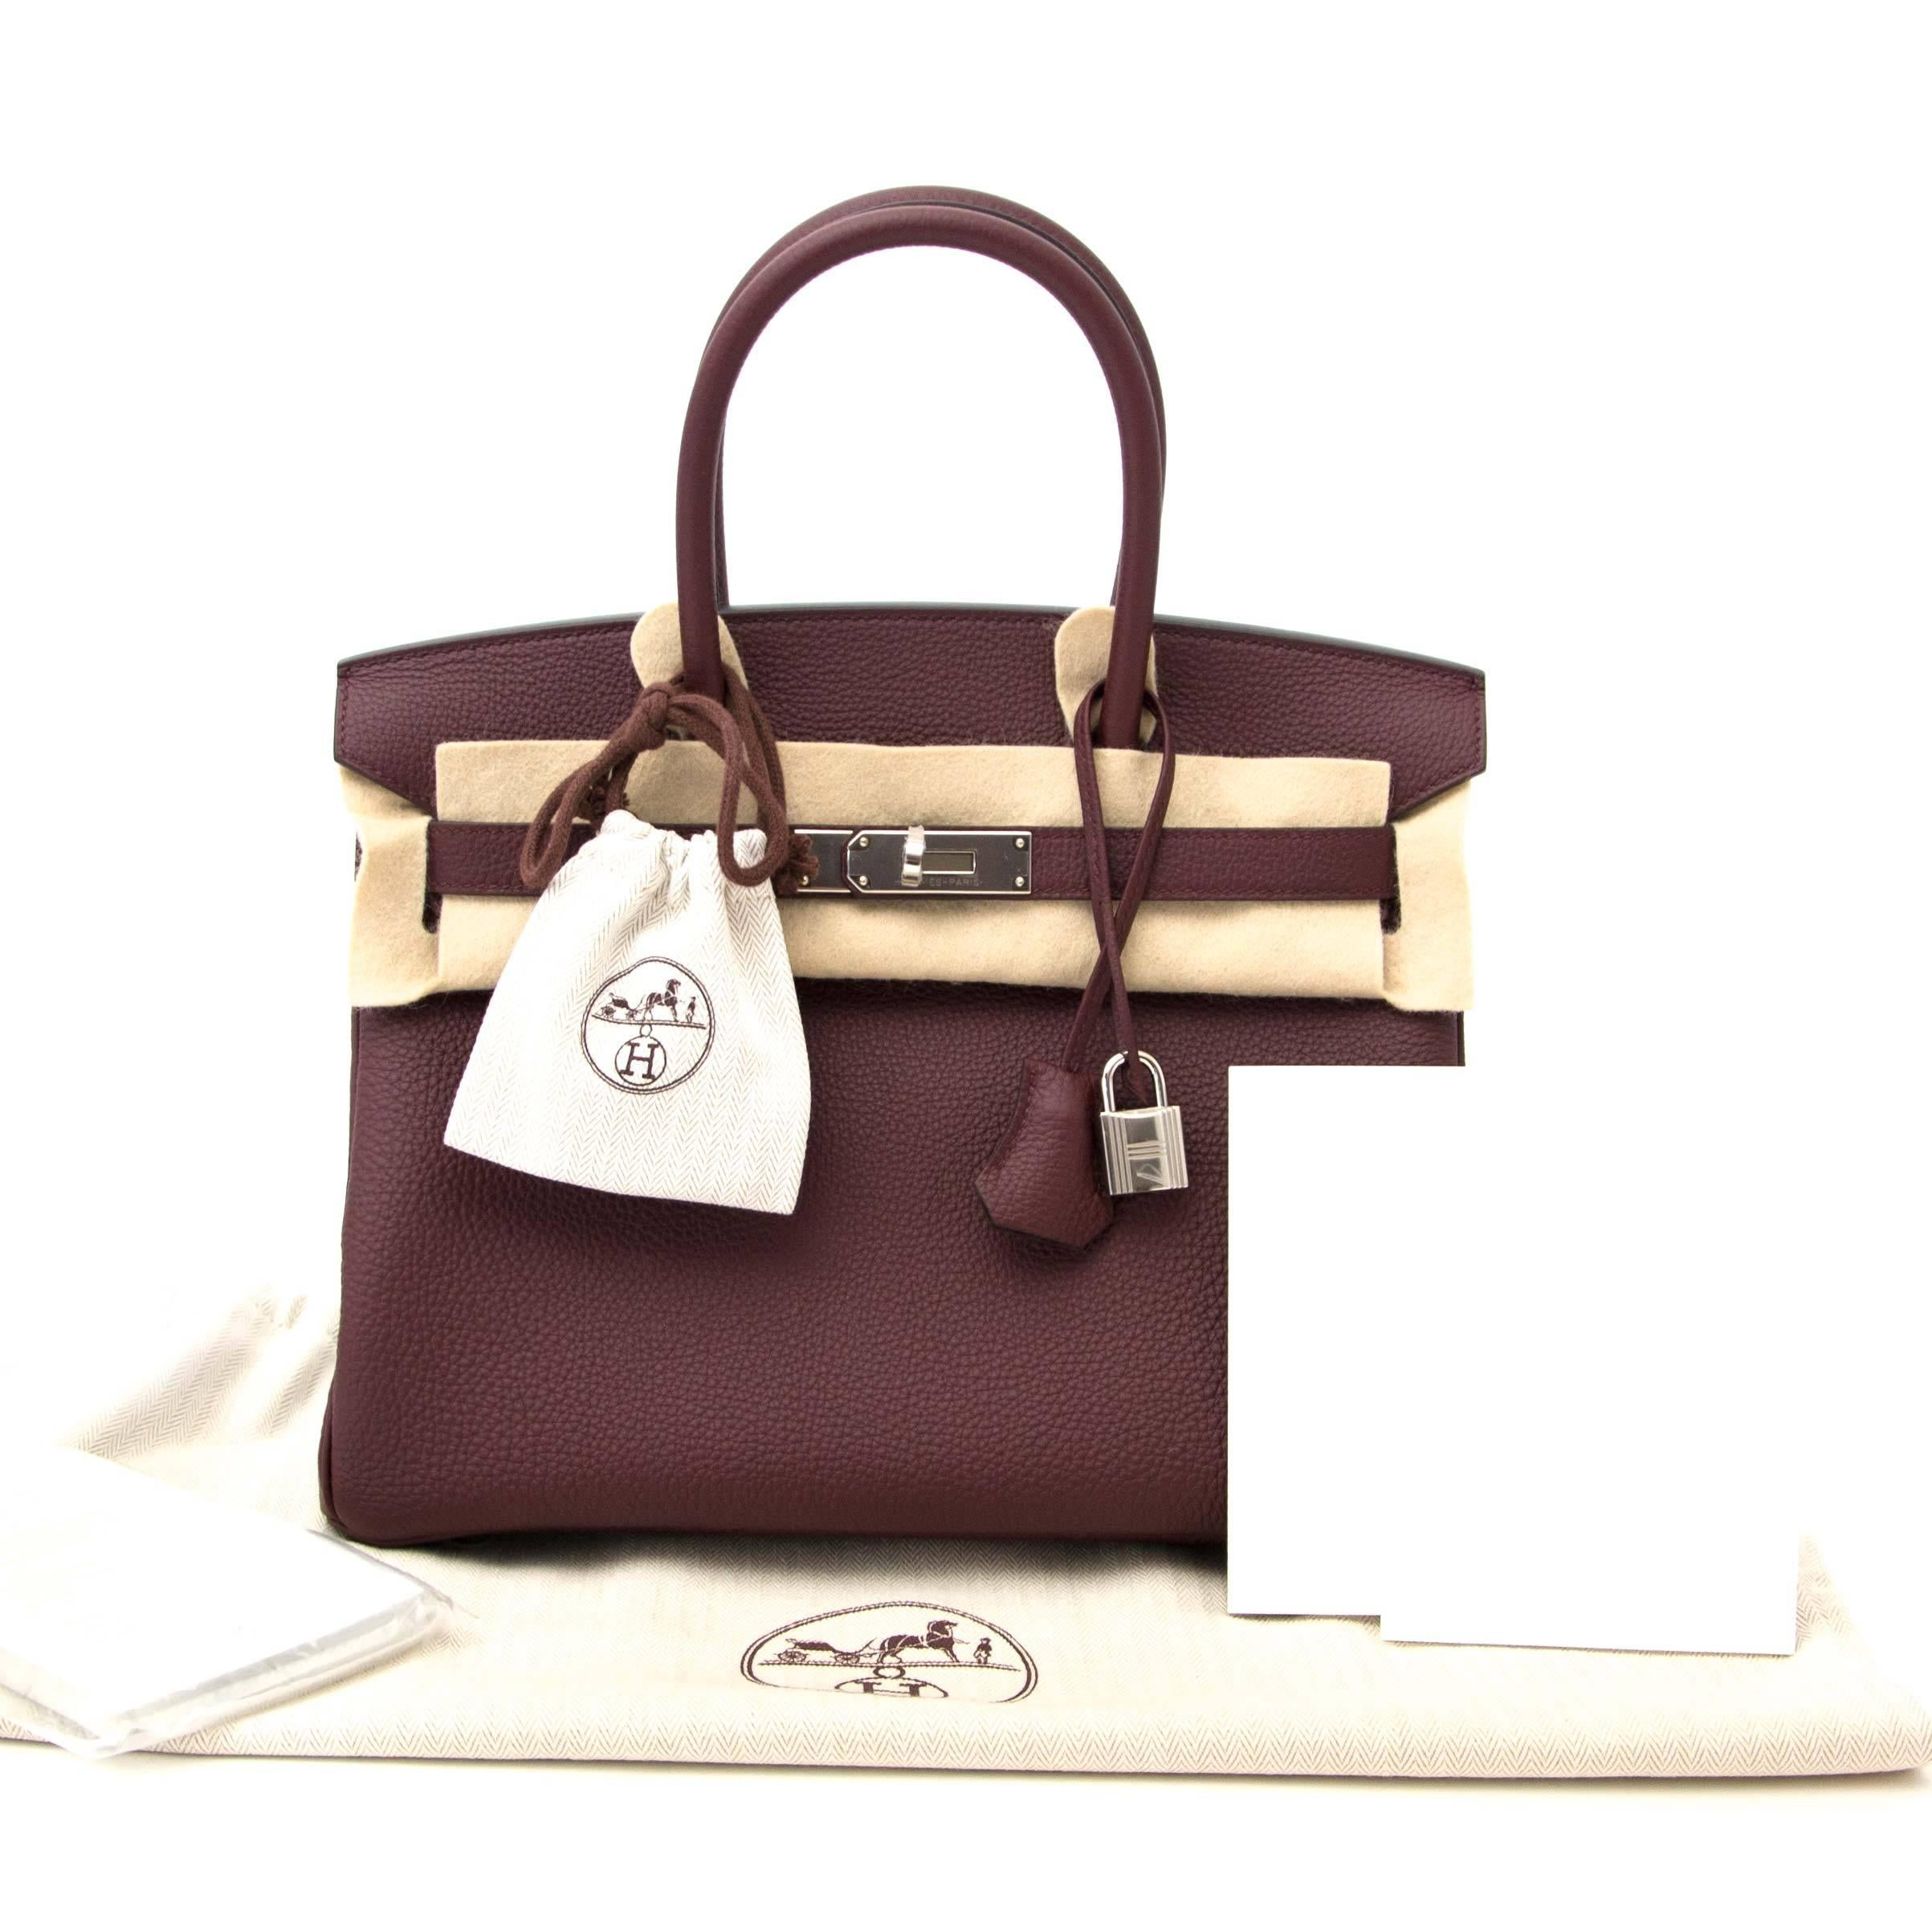 fca5d771b5cc germany hermes birkin bag 30 chocolat chocolate togo leather gold ...